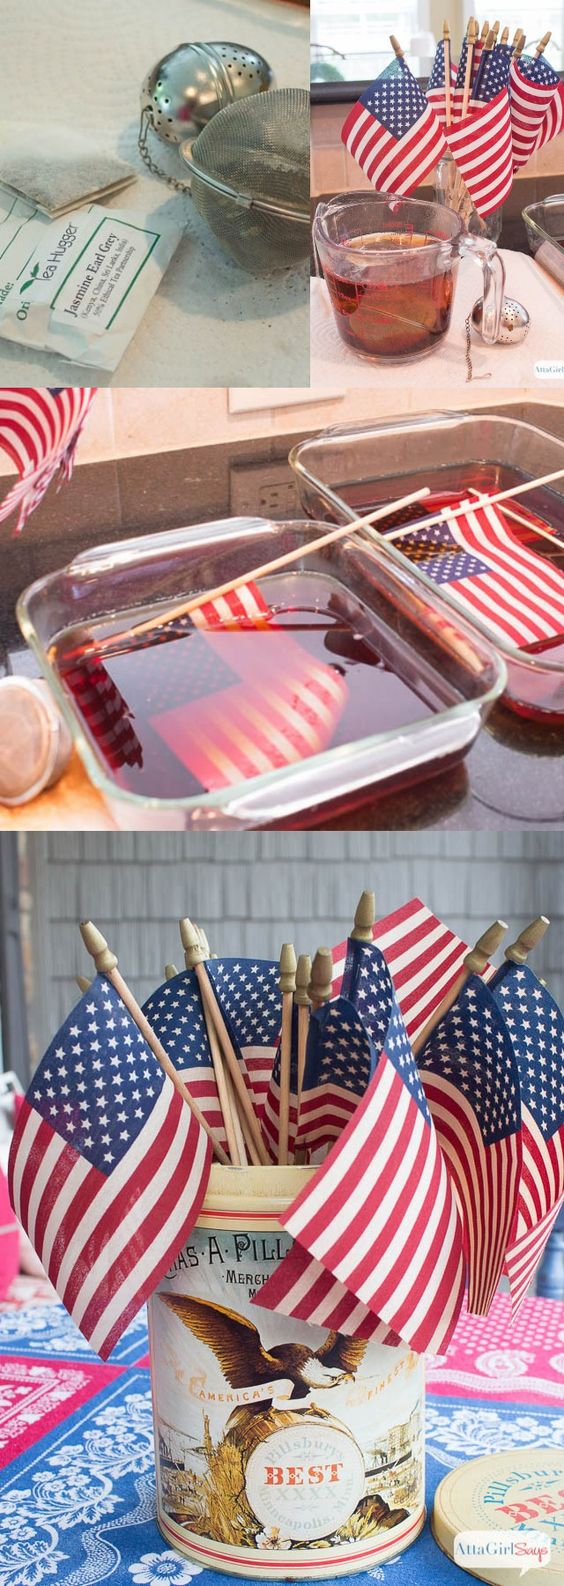 Atta Girl Says | DIY Tea-Stained Vintage American Flags | http://www.attagirlsays.com